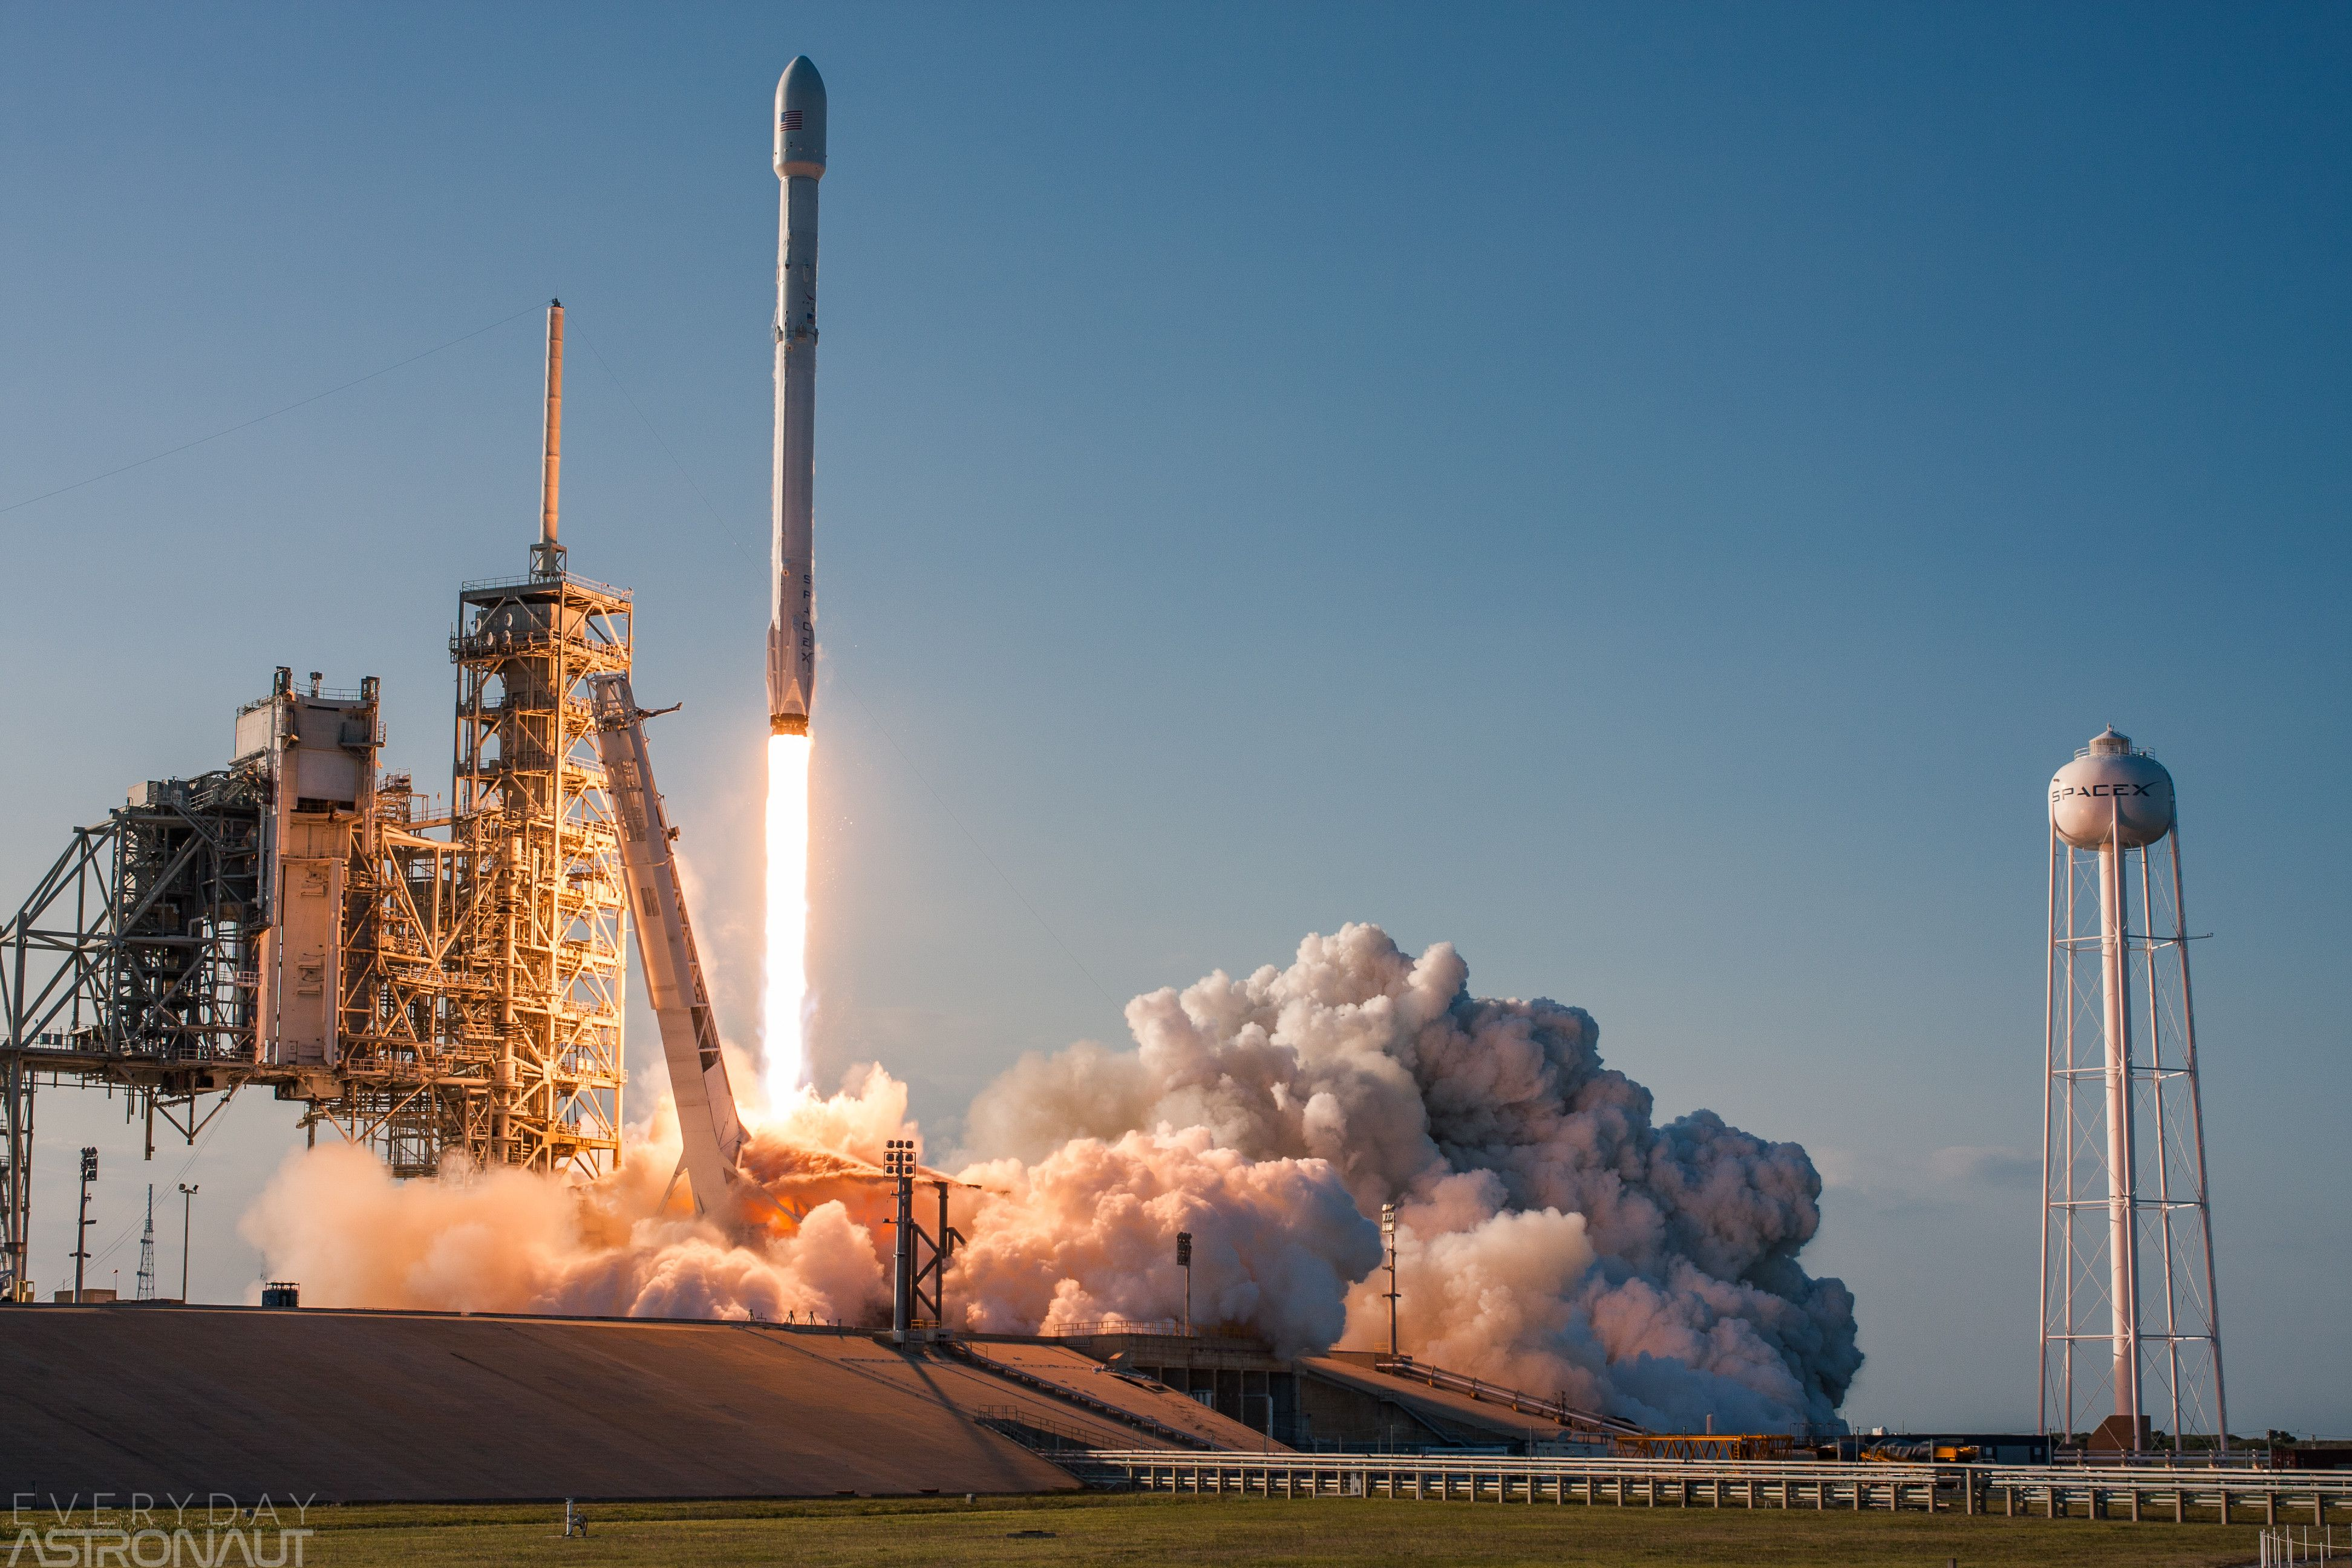 INTERESTING PHOTO OF THE DAY SPACEXS FIRST REUSED ROCKET LAUNCH